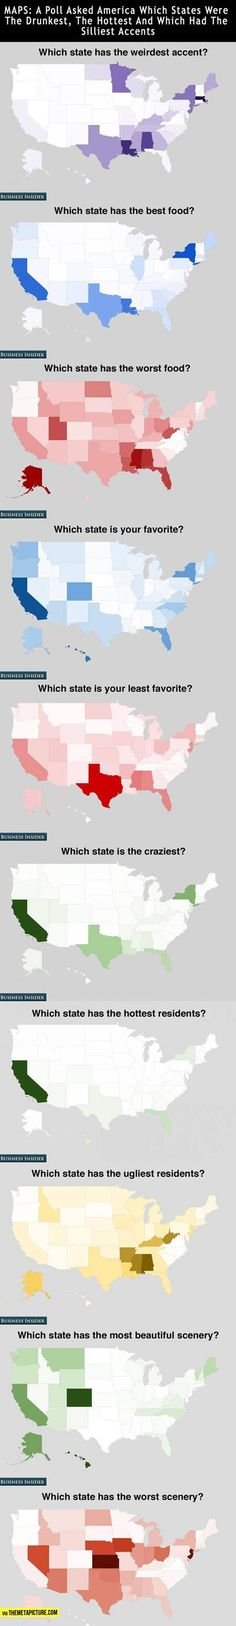 How Americans feel about the states...